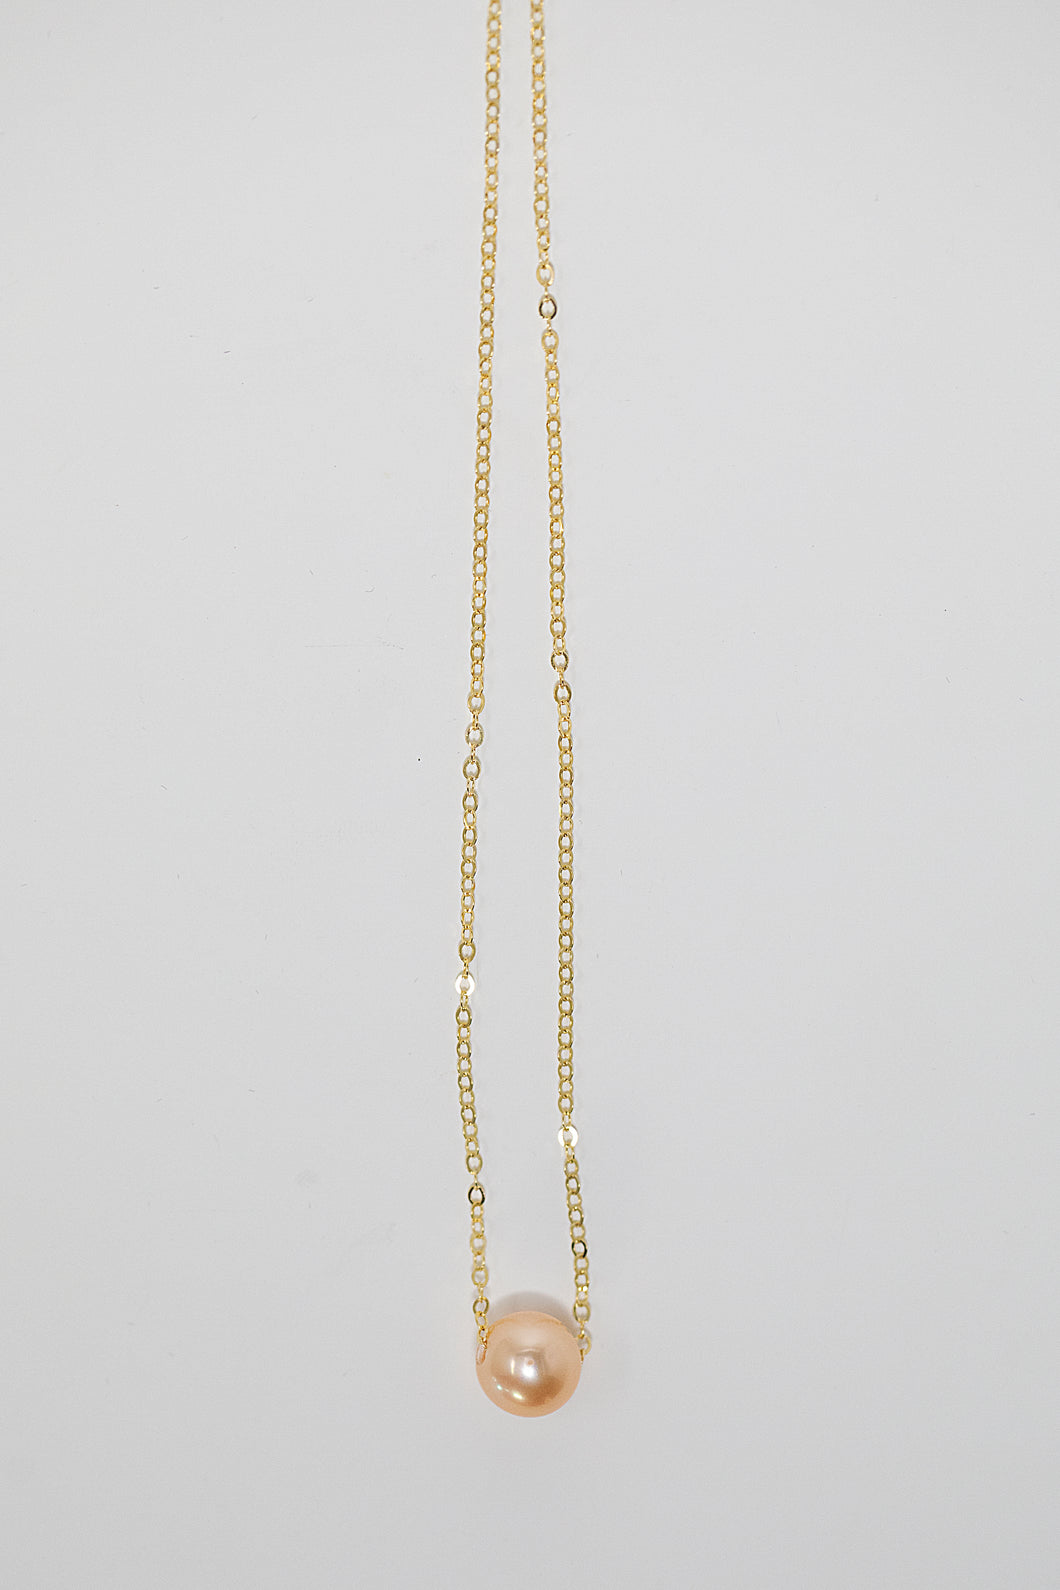 Single pink Edison pearl floating on gold fill chain handmade in Maui, Hawaii